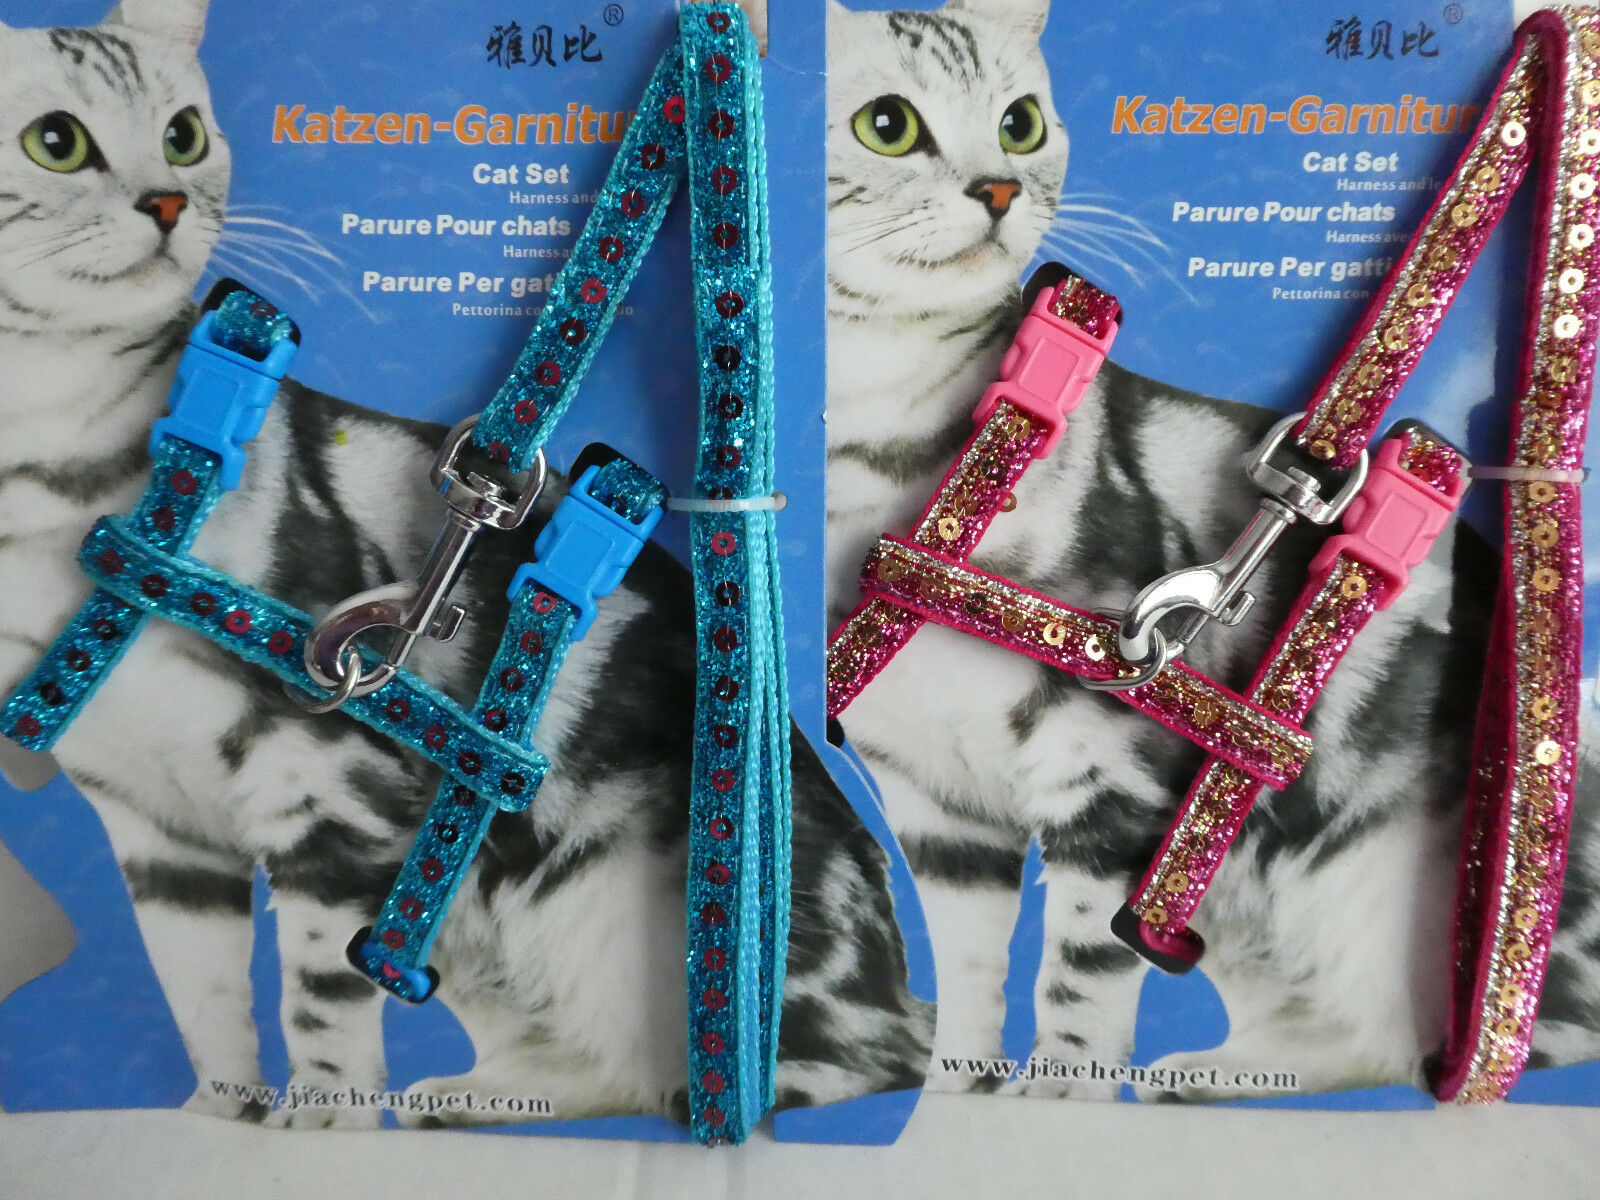 Cat Kitten Adjustable Harness & Lead Set Sparkly Sequined Pink or Blue